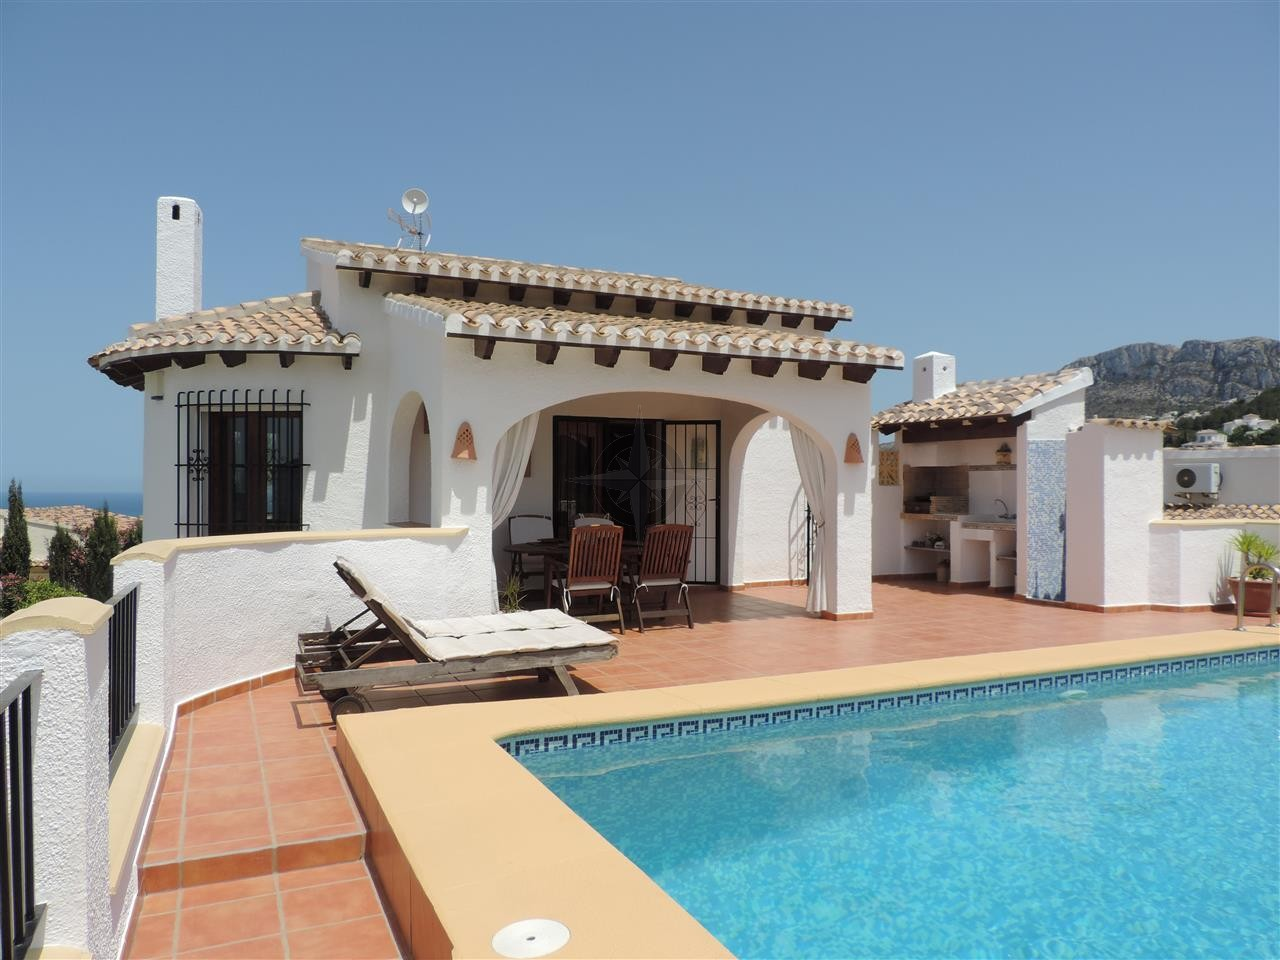 Beautiful Villa With Separate Apartment In Monte Pego 4 Bedrooms 4 Bathrooms, Alicante